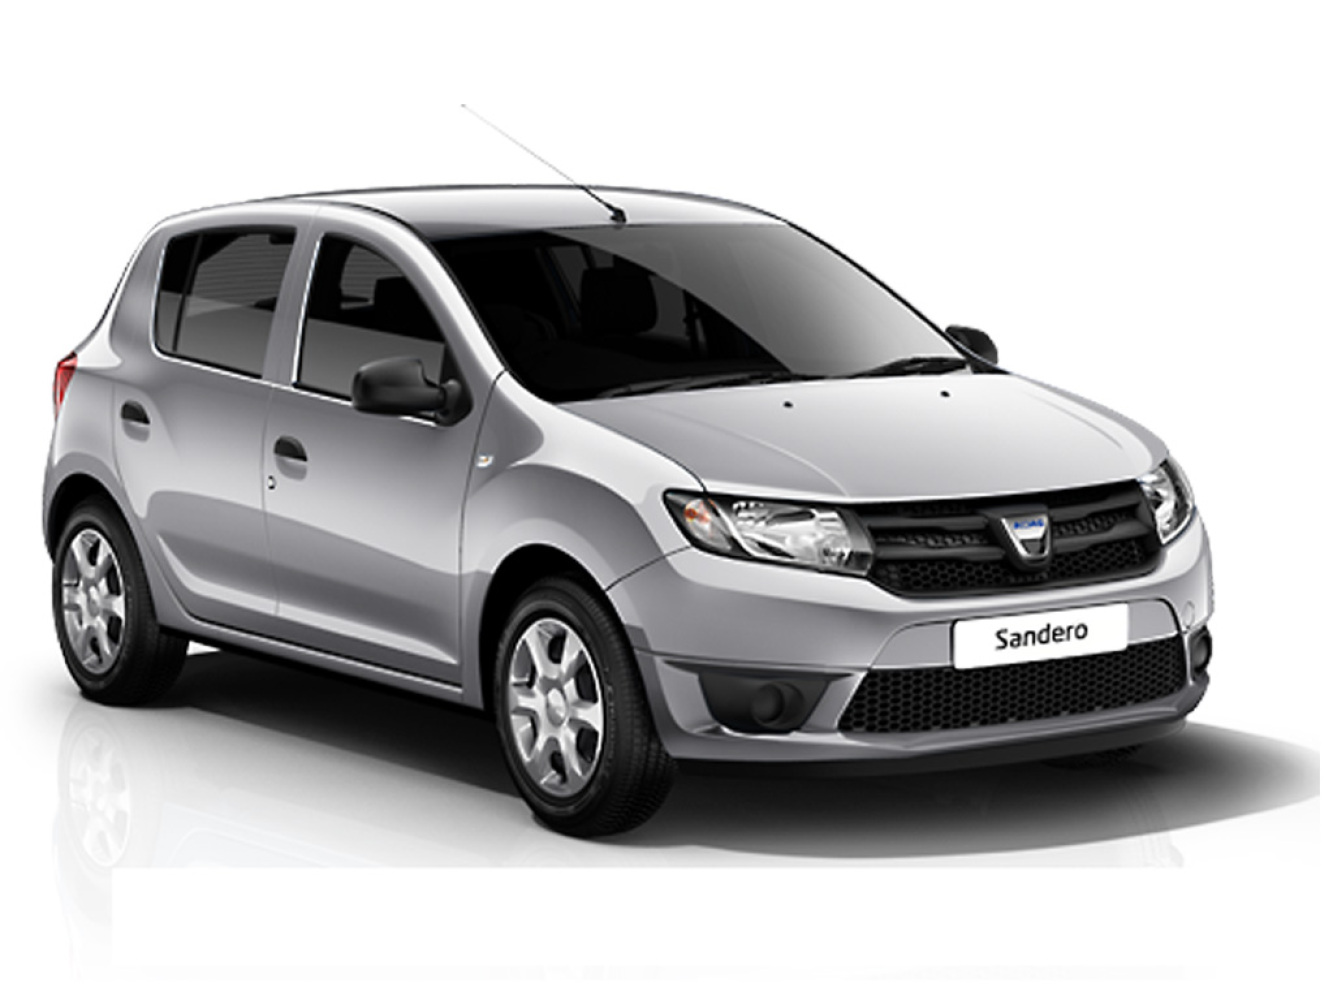 new dacia sandero 1 0 sce ambiance 5dr petrol hatchback for sale bristol street. Black Bedroom Furniture Sets. Home Design Ideas